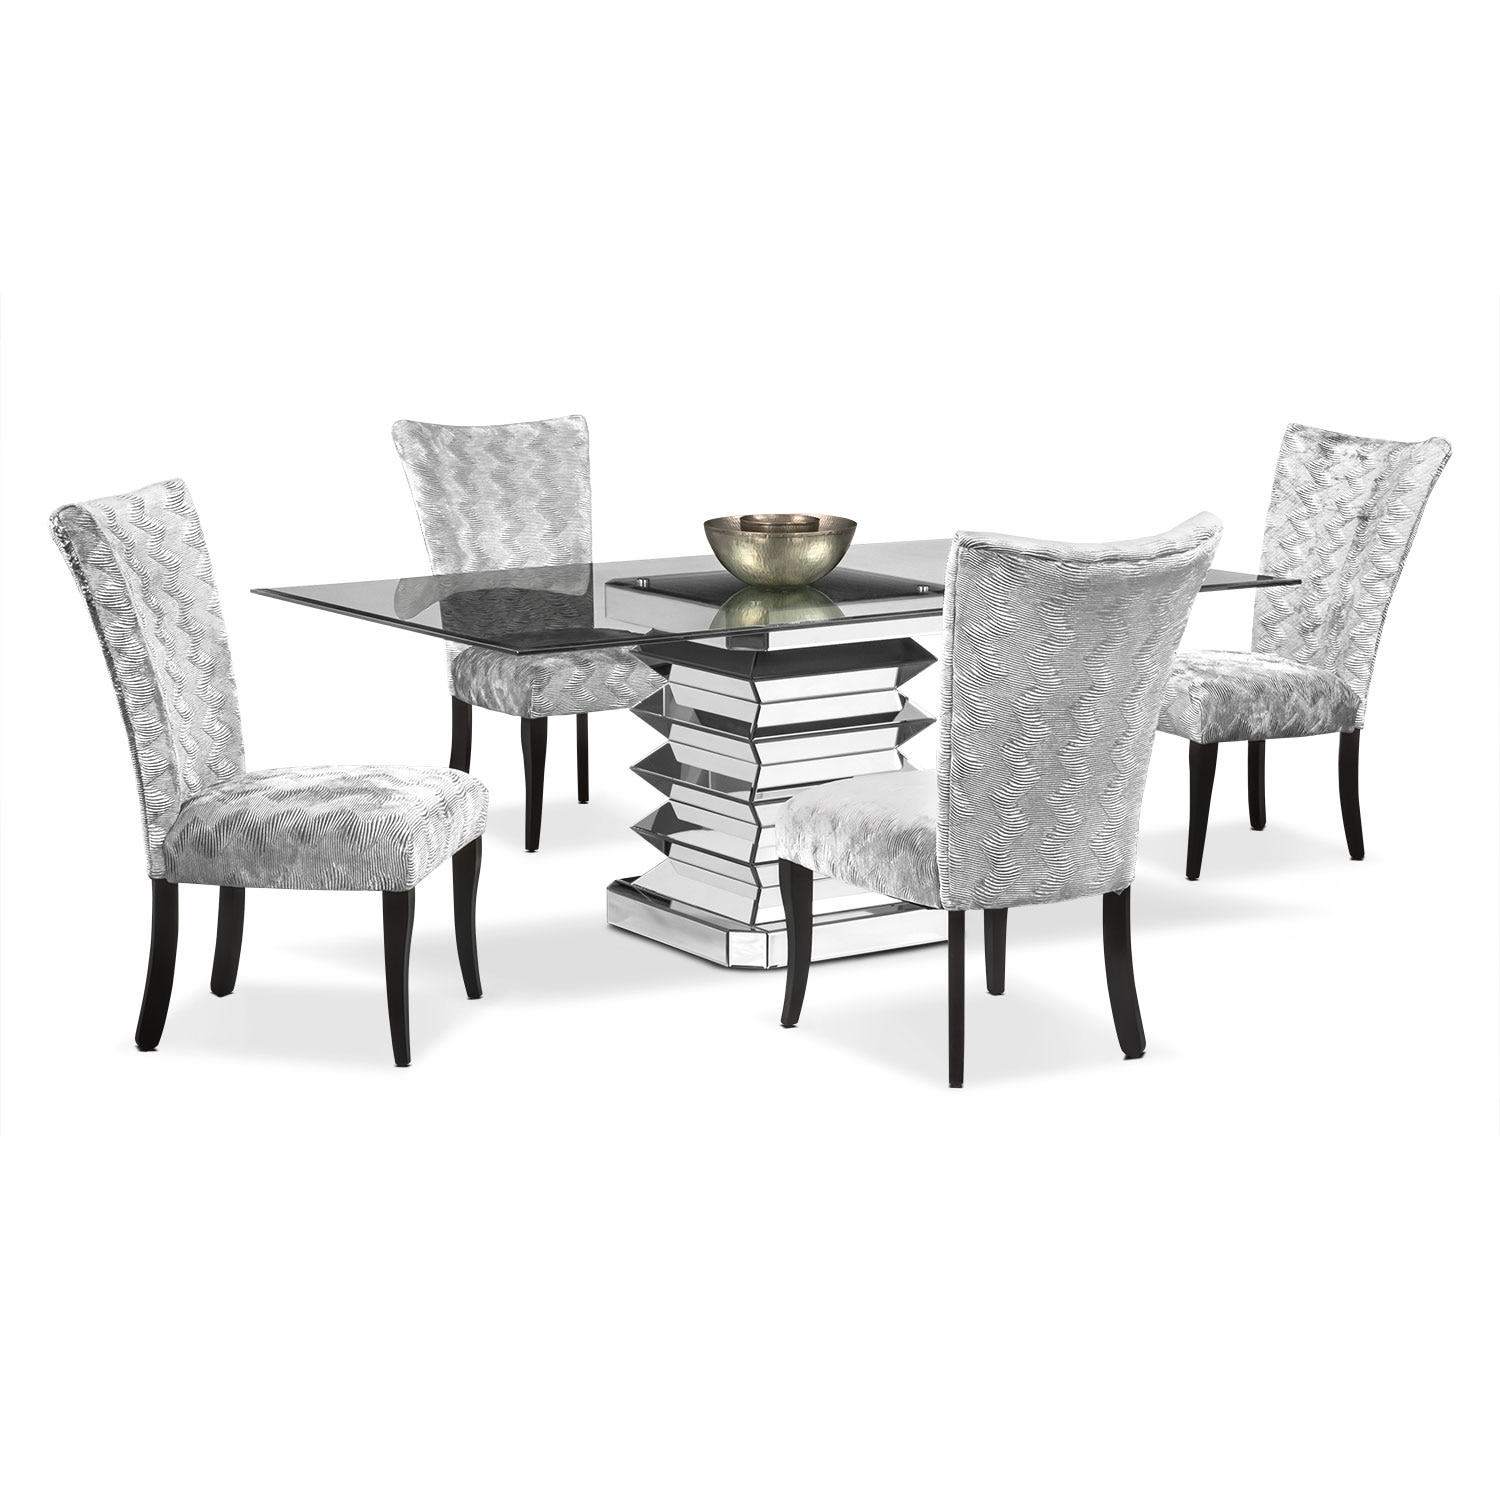 Dining Room Furniture - Vibrato Table and 4 Chairs - Silver